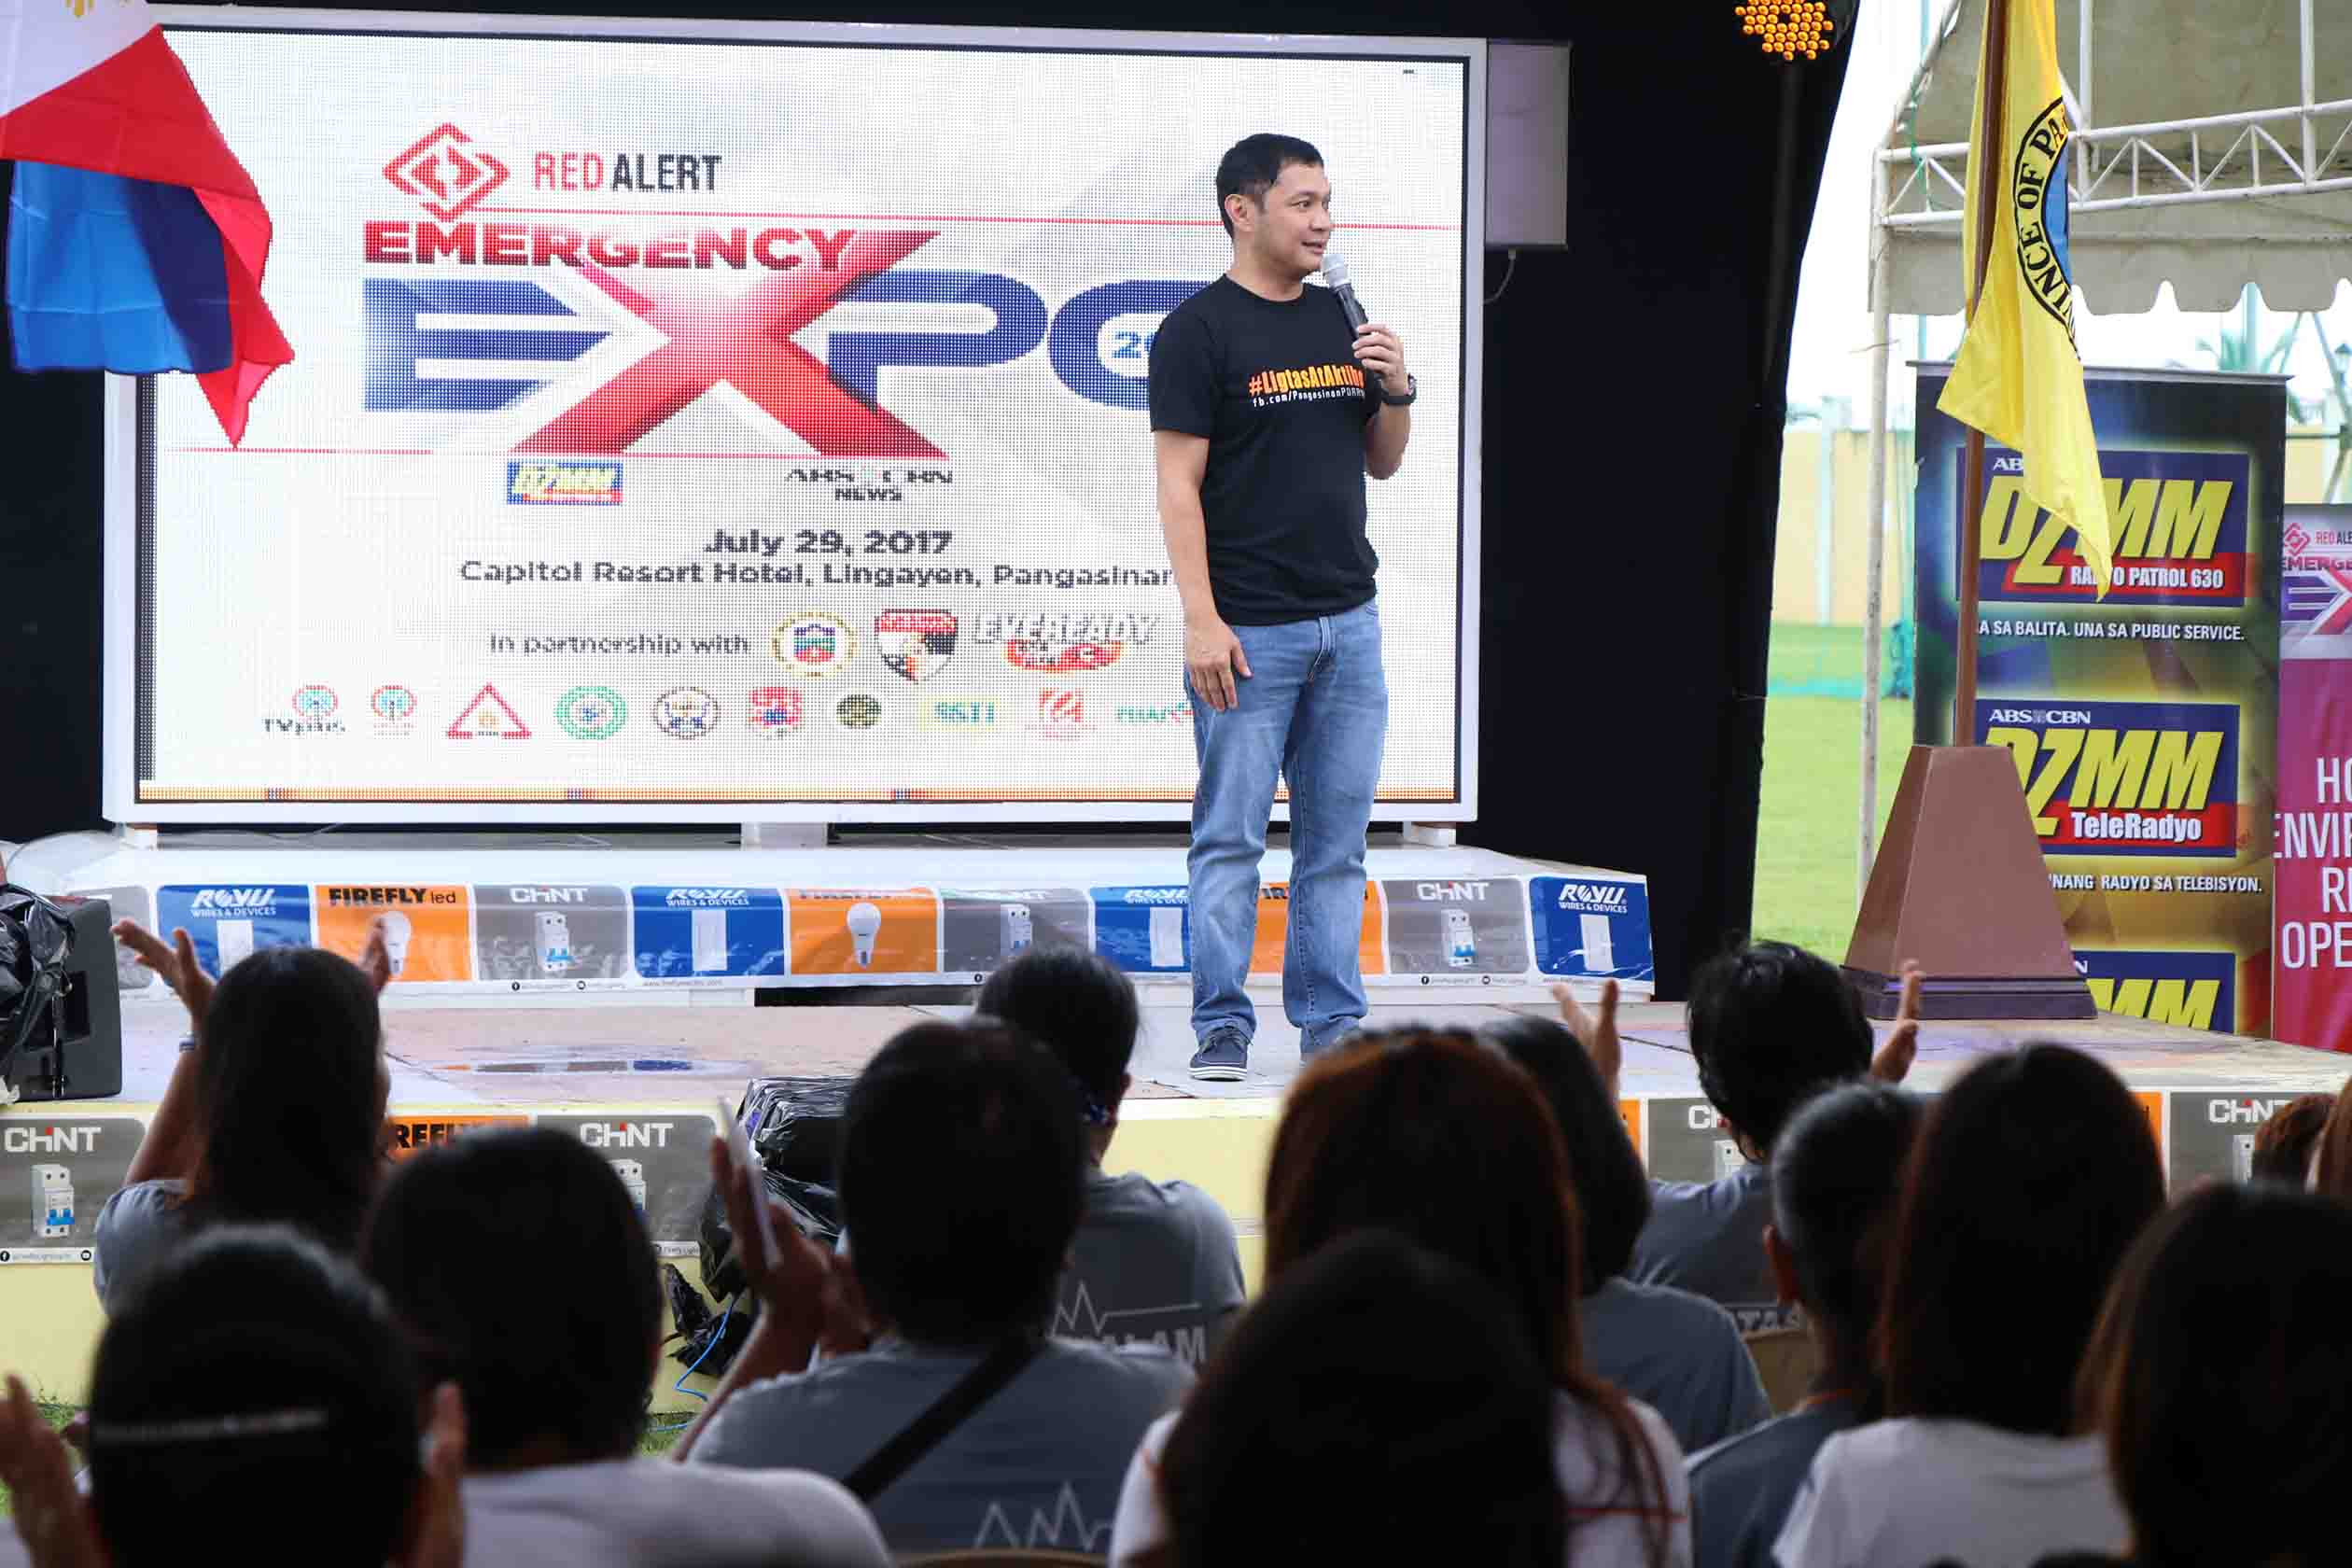 pc_BE FORCE MULTIPLIERS' GOV. ESPINO URGES EMERGENCY RESPONDERS